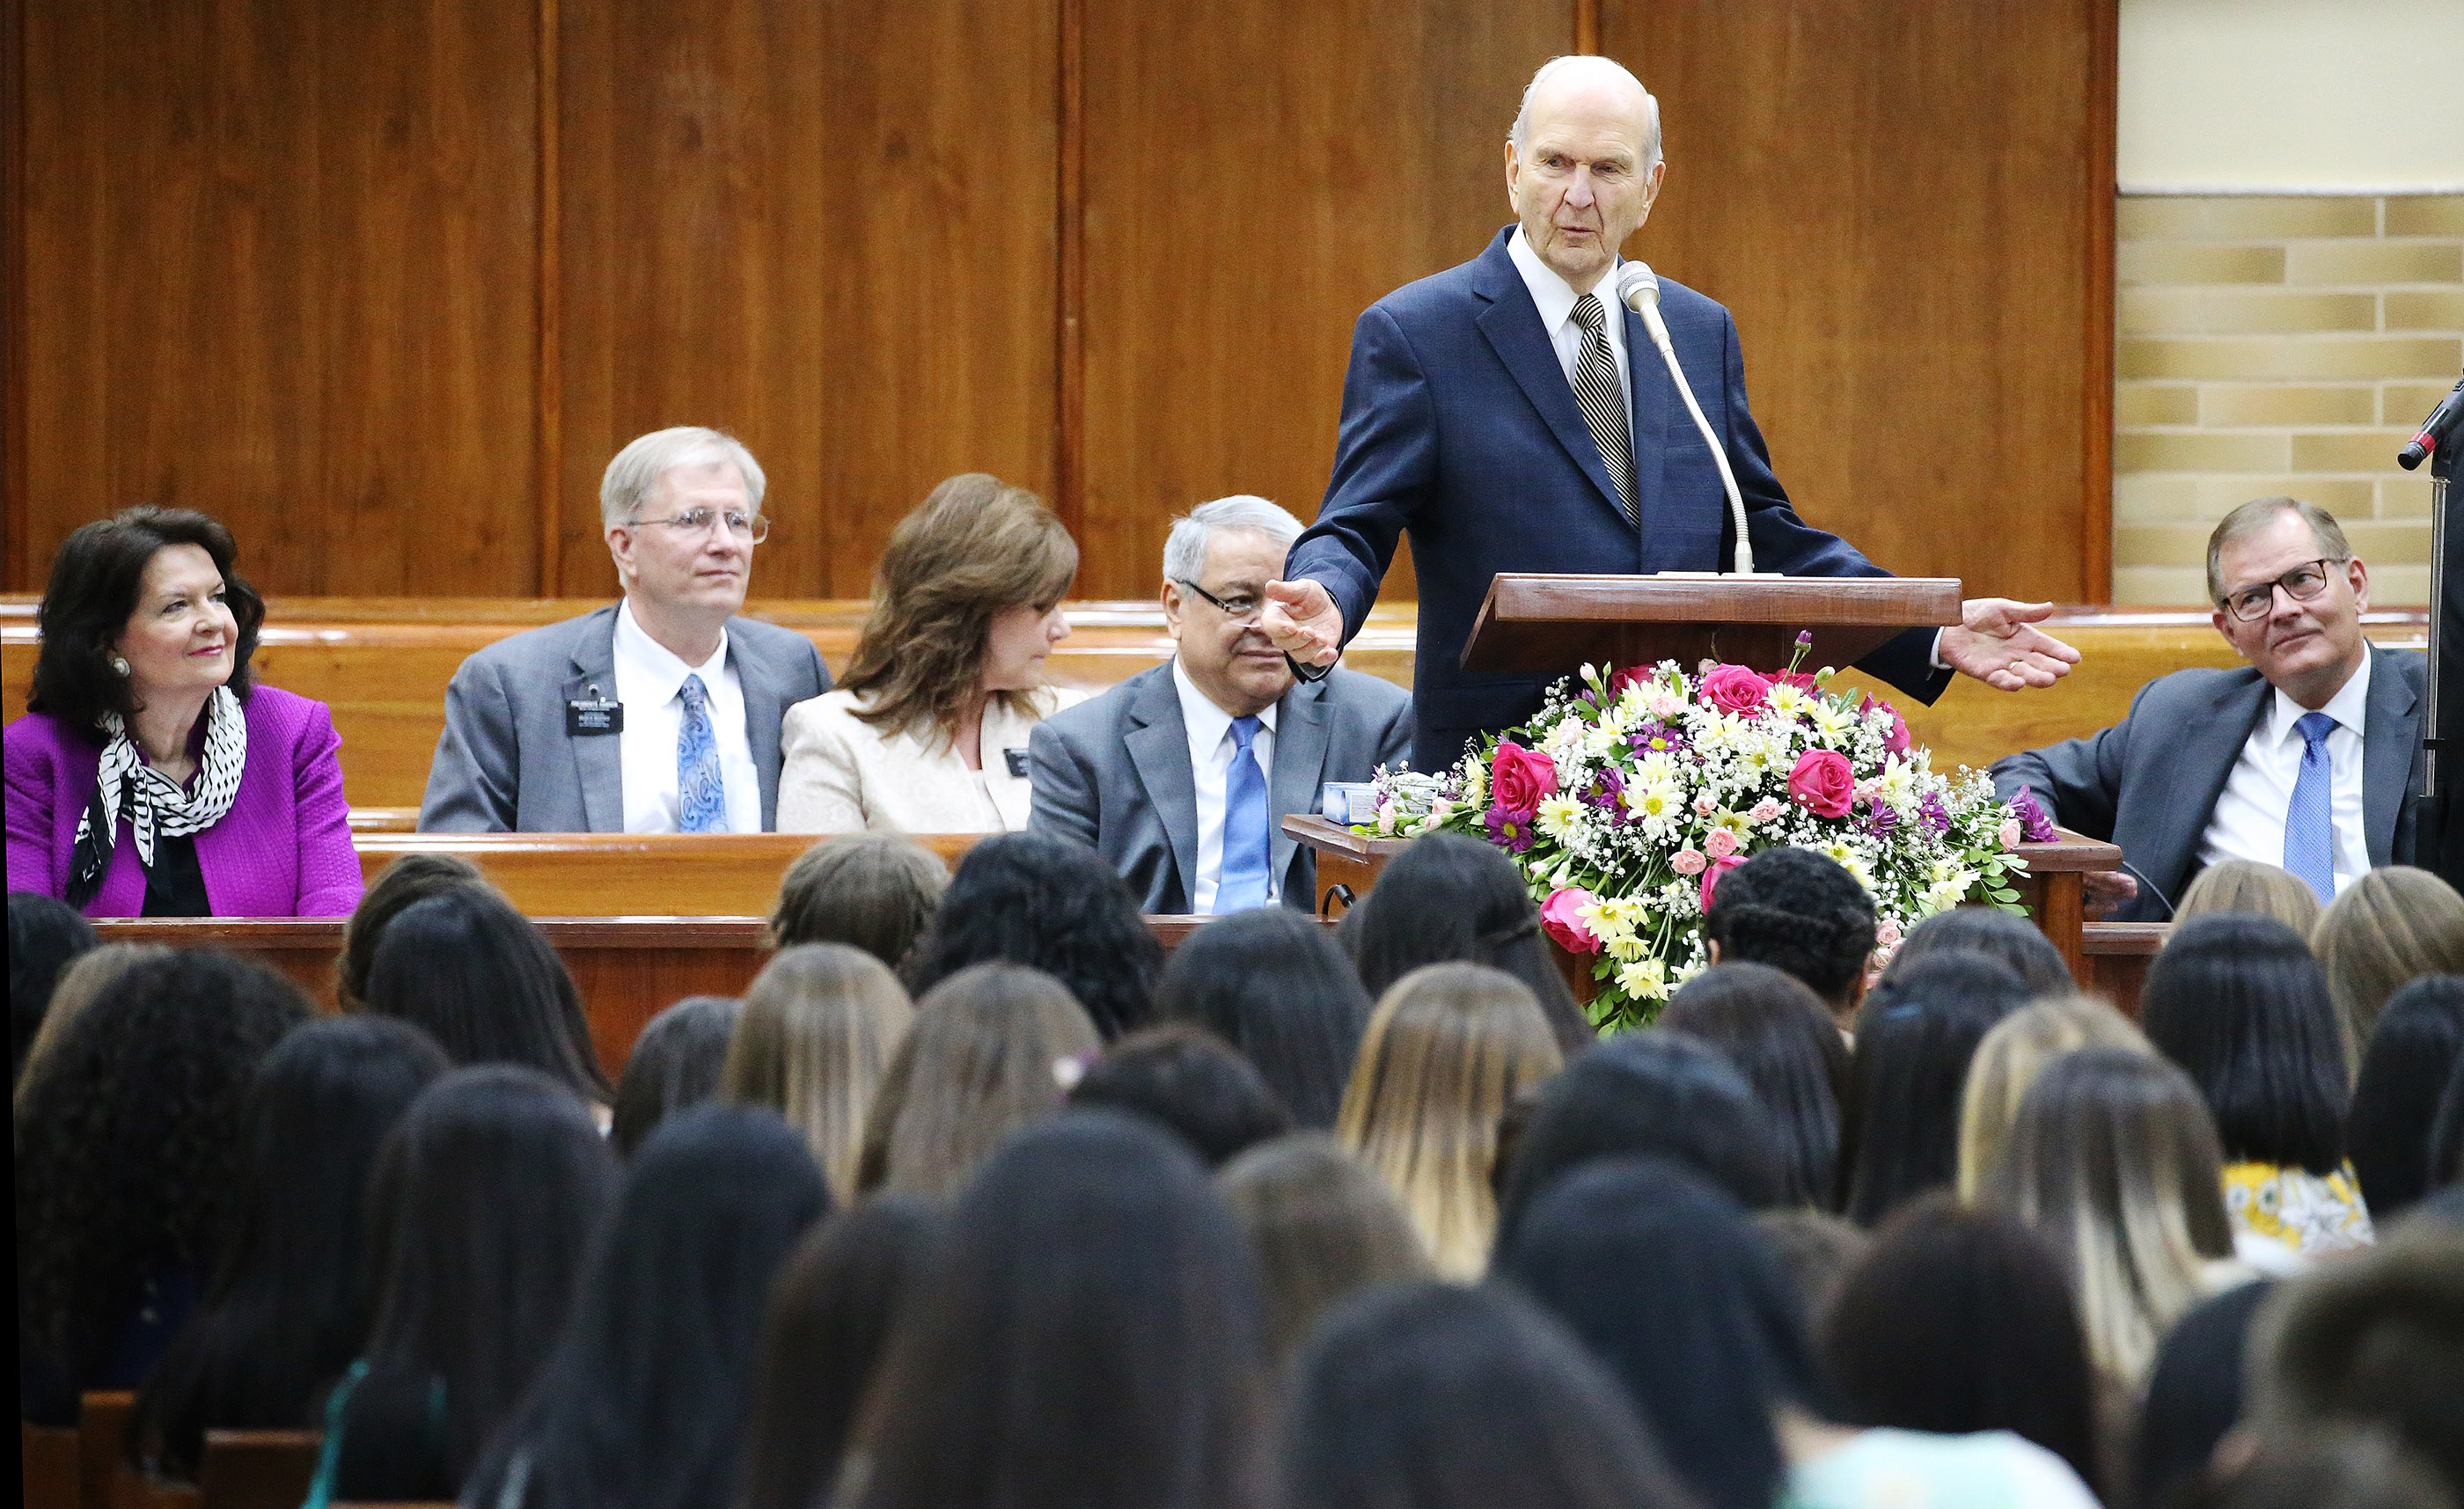 President Russell M. Nelson of The Church of Jesus Christ of Latter-day Saints speaks to missionaries in Asuncion, Paraguay, on Monday, Oct. 22, 2018.